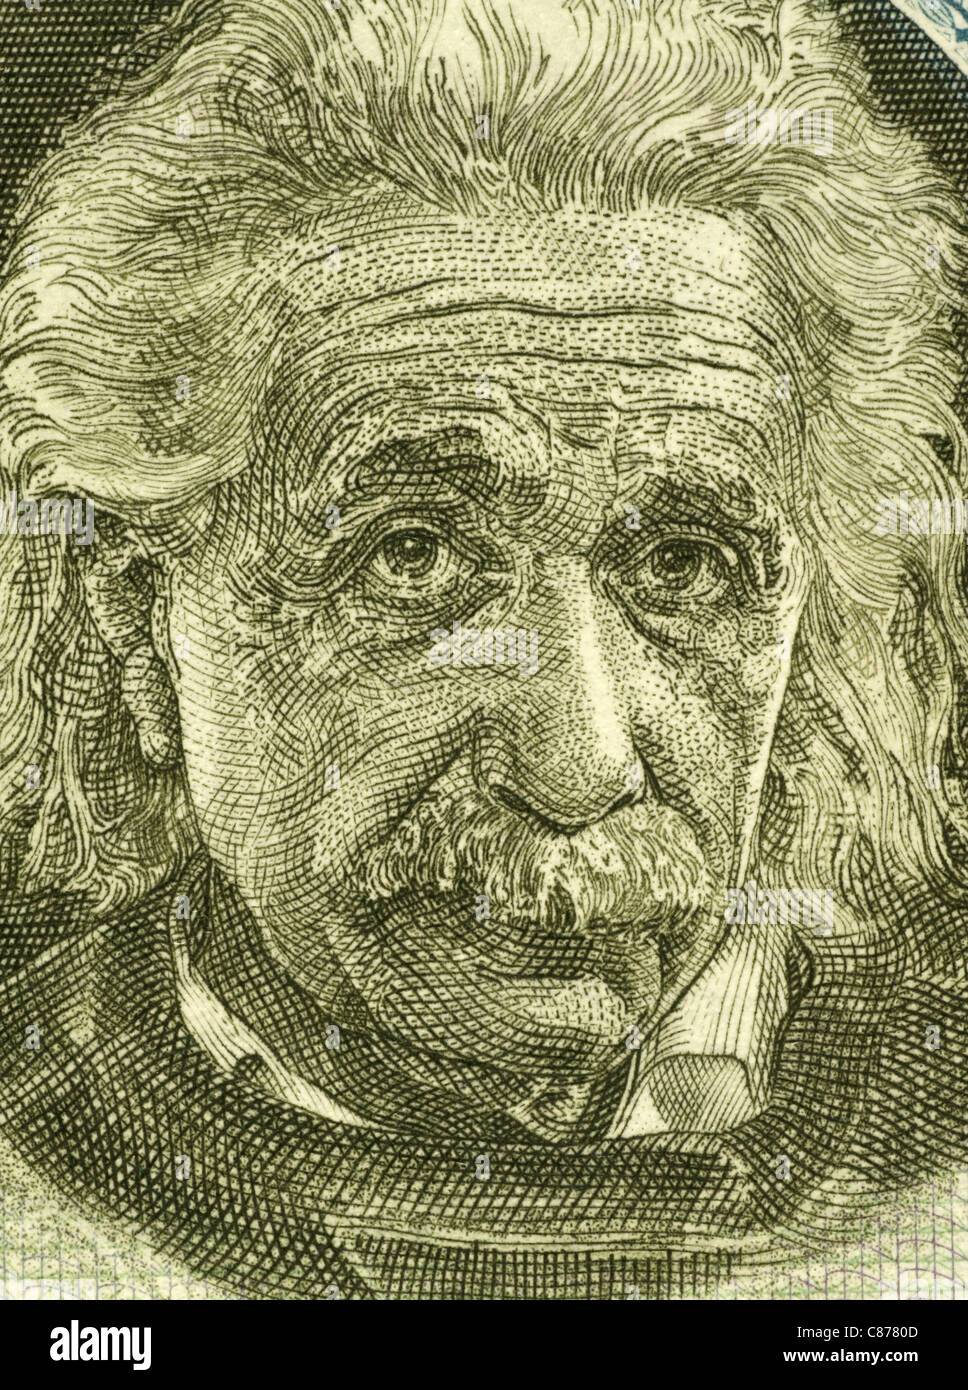 Albert Einstein (1879-1955) on 5 Pounds 1968 Banknote from Israel. German born theoretical physicist regarded as - Stock Image